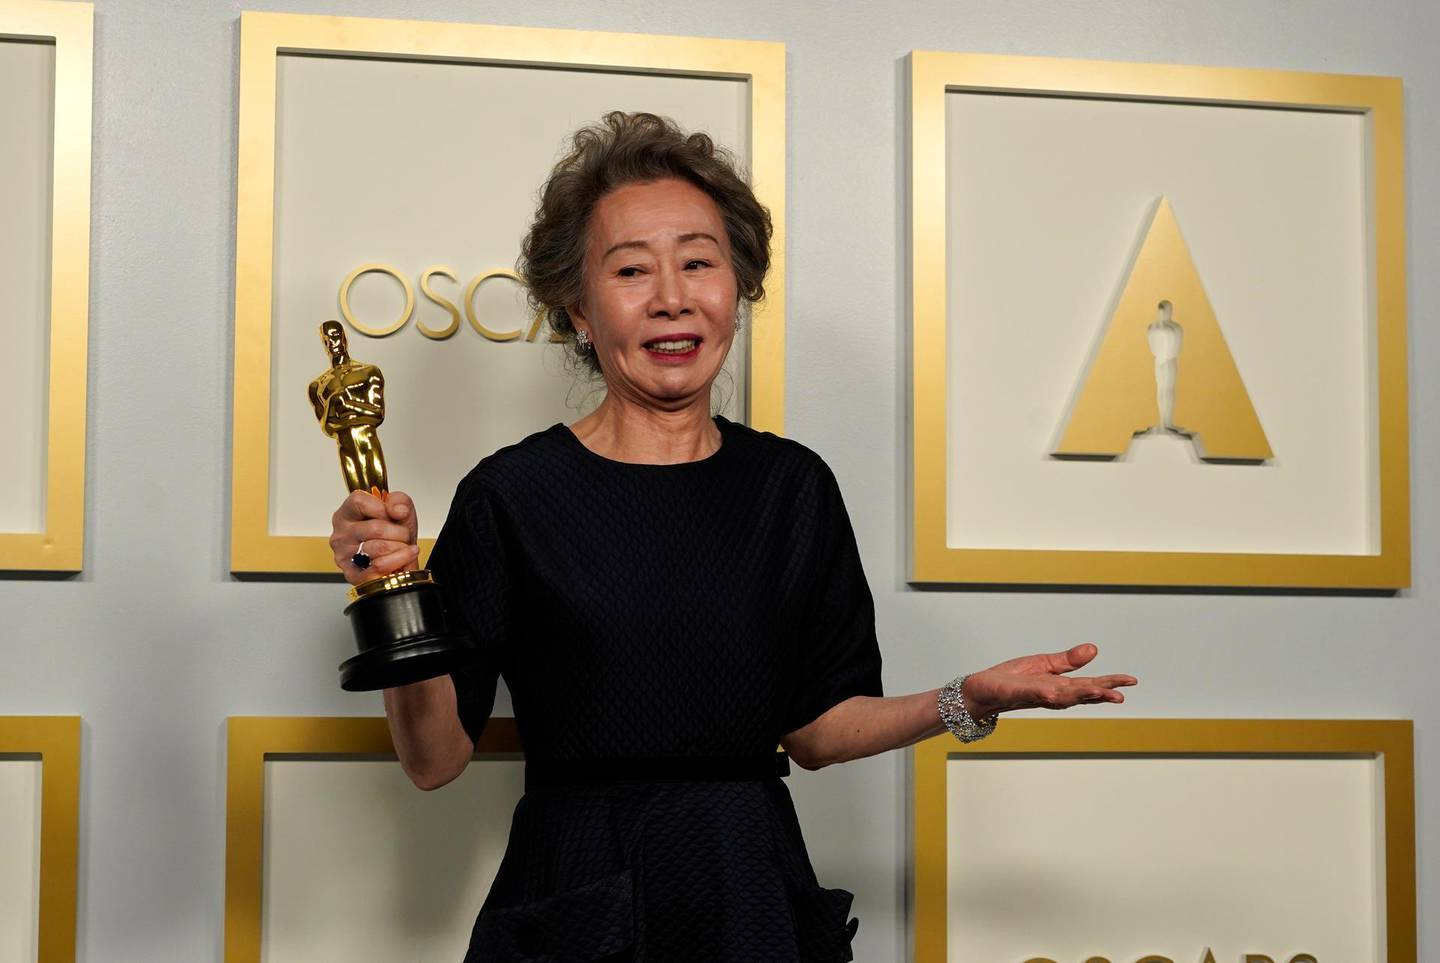 epa09160842 Youn Yuh-jung, winner of the award for best actress in a supporting role for 'Minari,' poses in the press room at the 93rd annual Academy Awards ceremony at Union Station in Los Angeles, California, USA, 25 April 2021. The Oscars are presented for outstanding individual or collective efforts in filmmaking in 24 categories. The Oscars happen two months later than originally planned, due to the impact of the coronavirus COVID-19 pandemic on cinema.  EPA/Chris Pizzello / POOL *** Local Caption *** 55864152